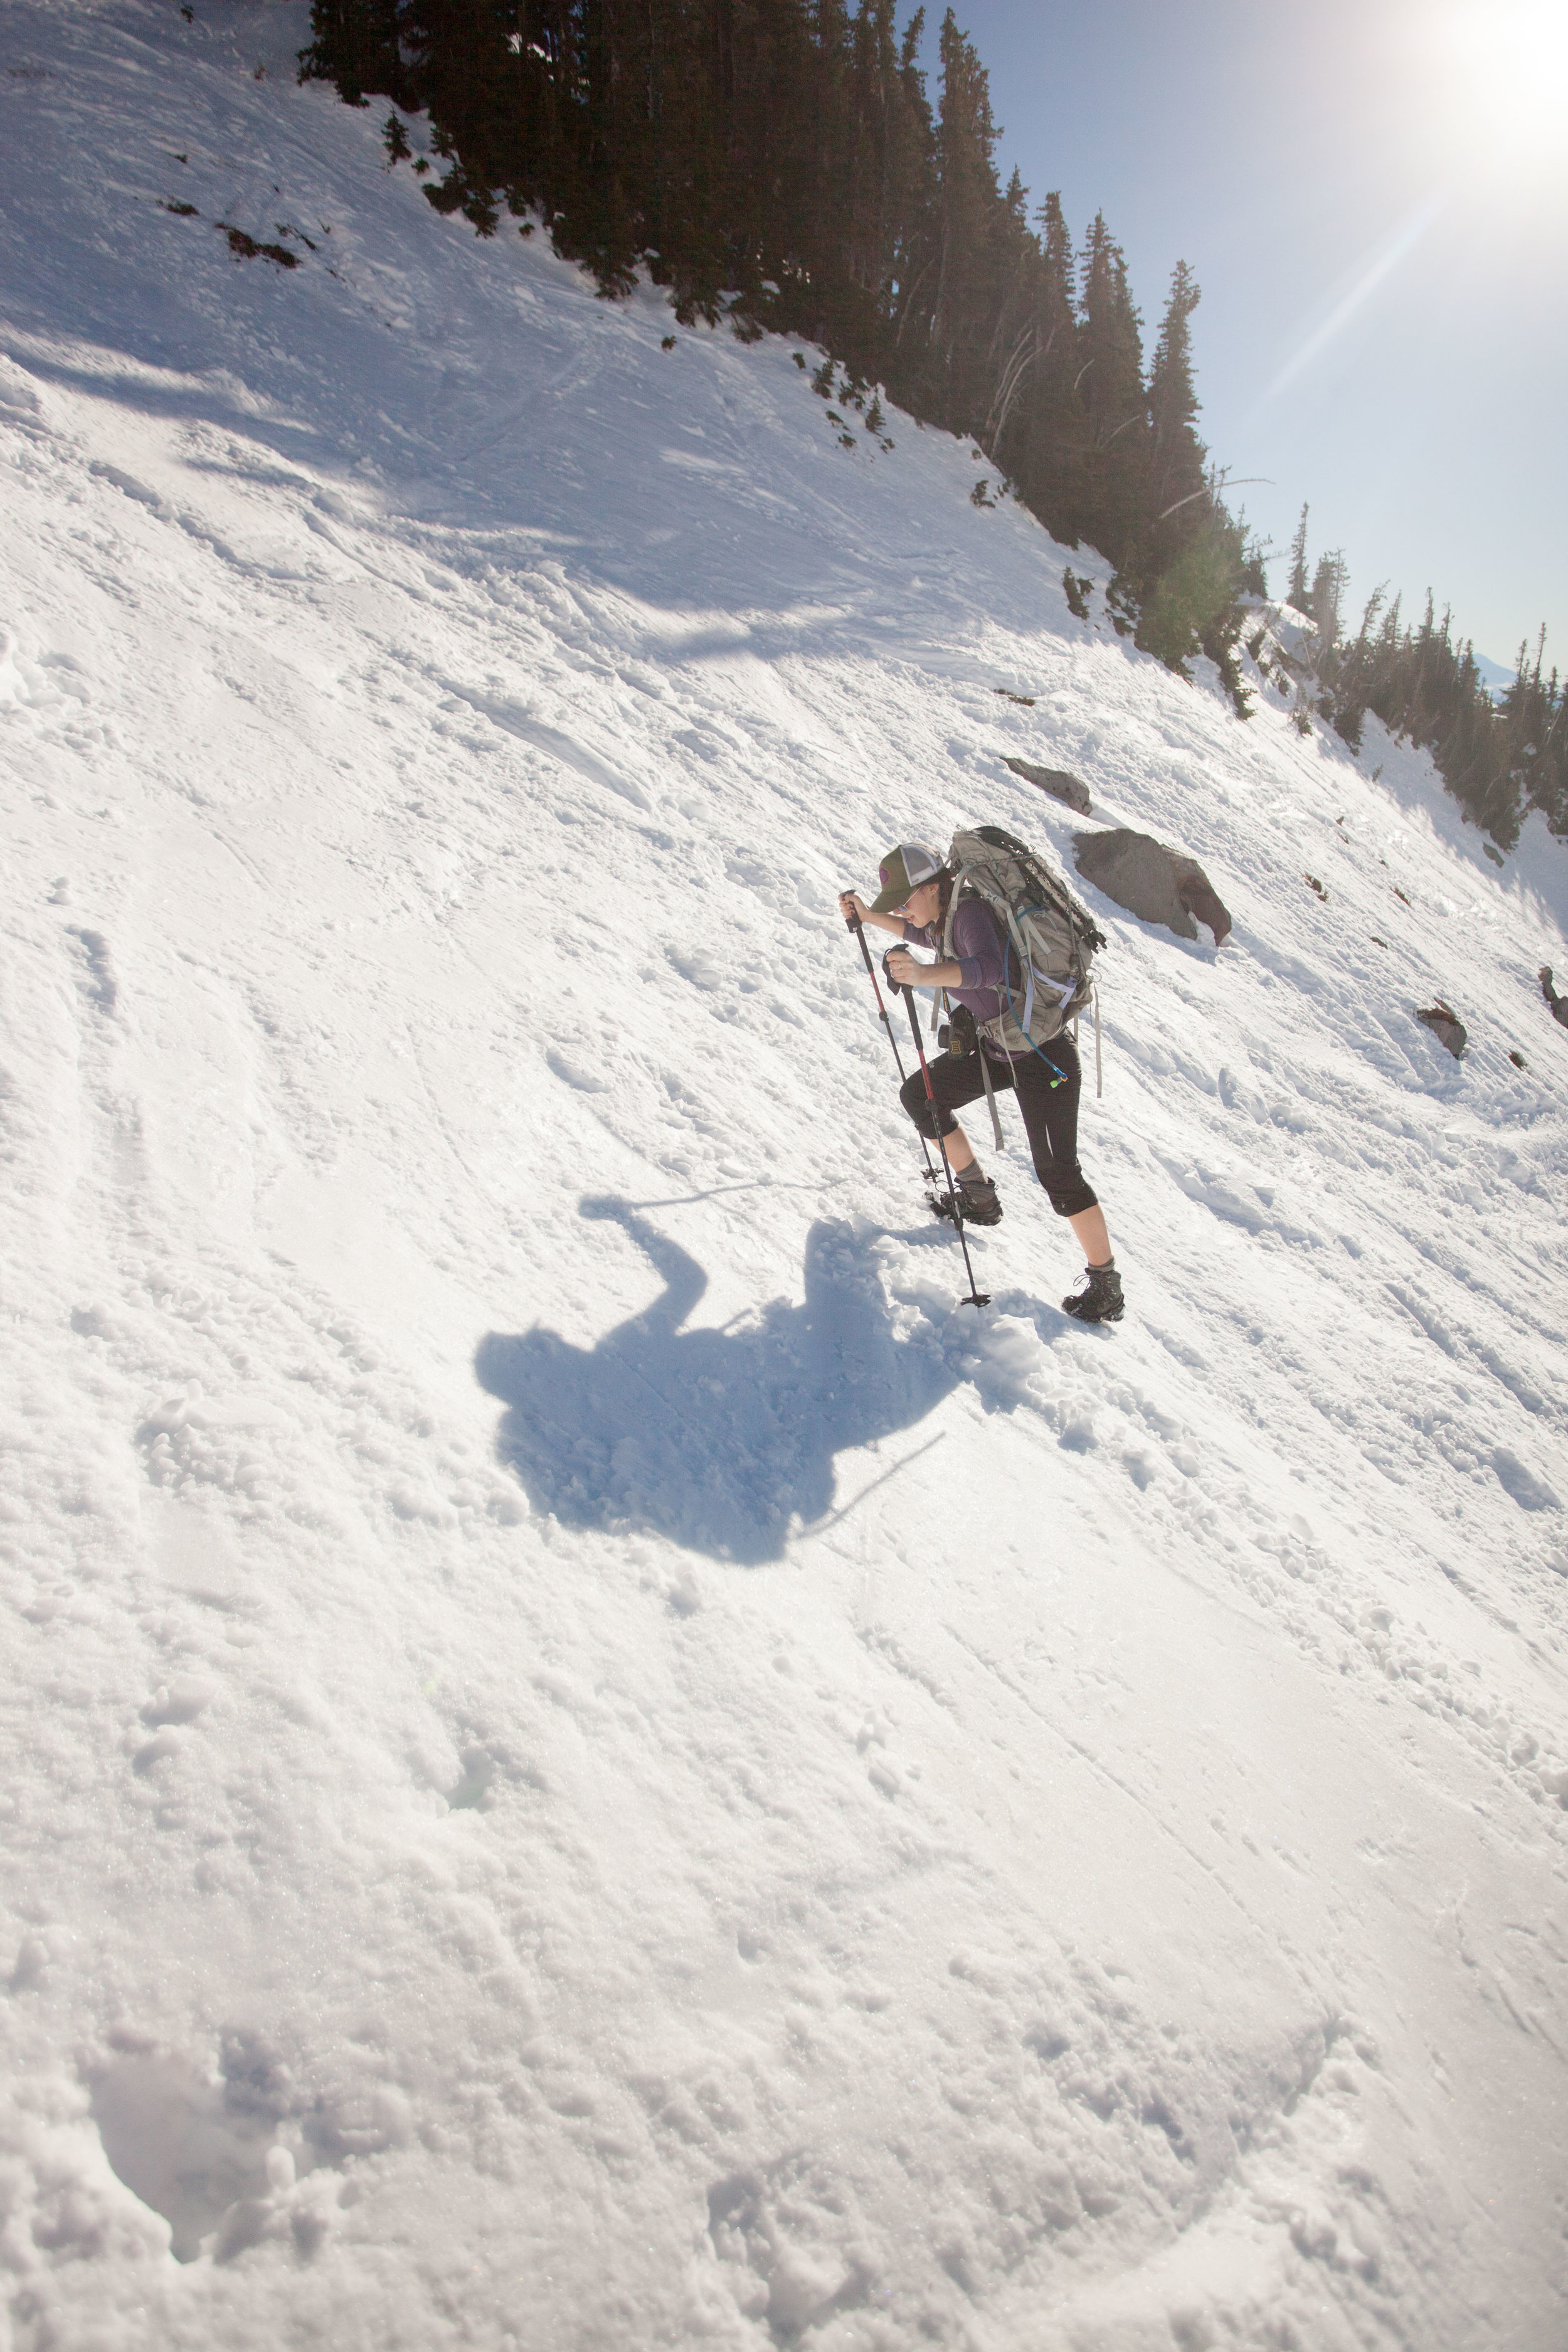 Panorama Face was almost too steep for microspikes, and on the way down we very carefully descended on snowshoes.